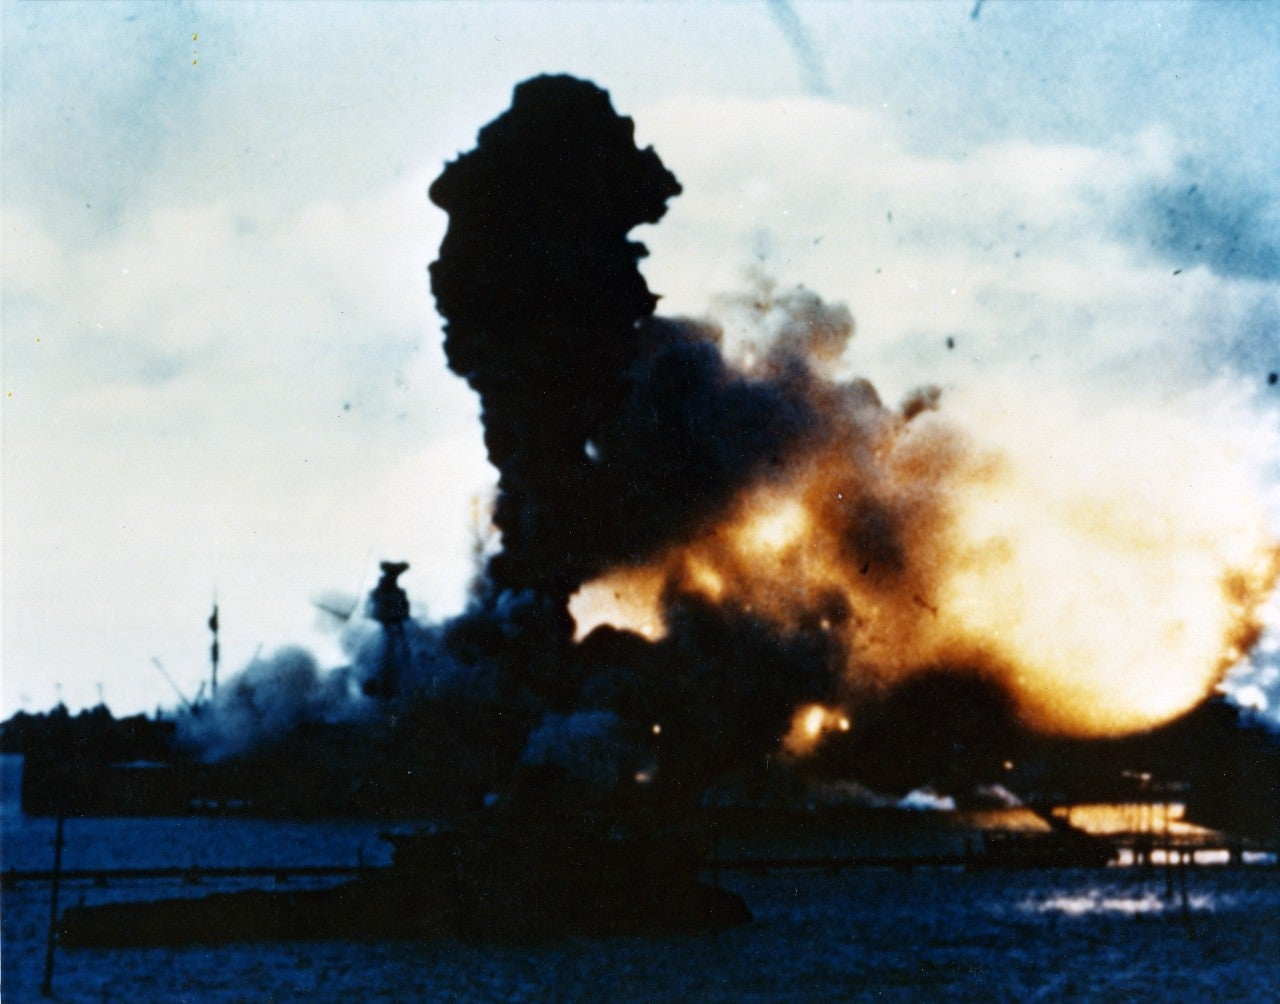 www.wearethemighty.com: 5 Reasons the Japanese didn't launch a third attack on Pearl Harbor